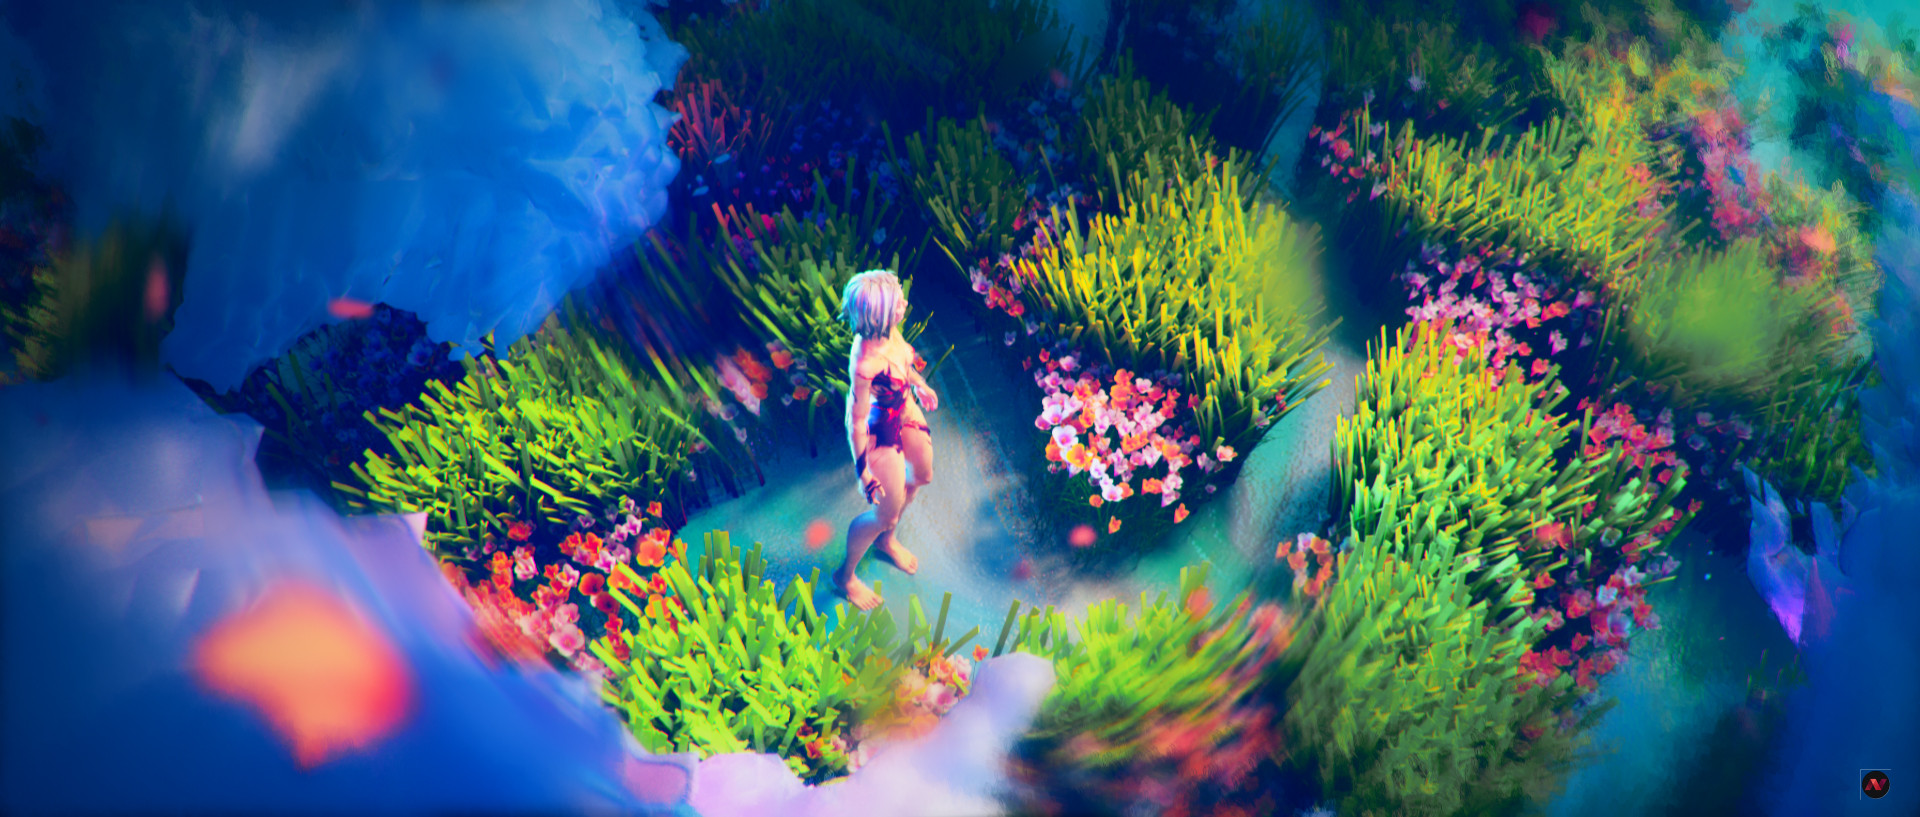 The first sequence introduces the character and the world she'll evolve. We wanted to mark at the same time the feeling of being lost in a totally unknown, empty, but not scary place. We also wanted a feeling of immensity, where things are not really defined. That leaves everyone free to interpret what they feel.